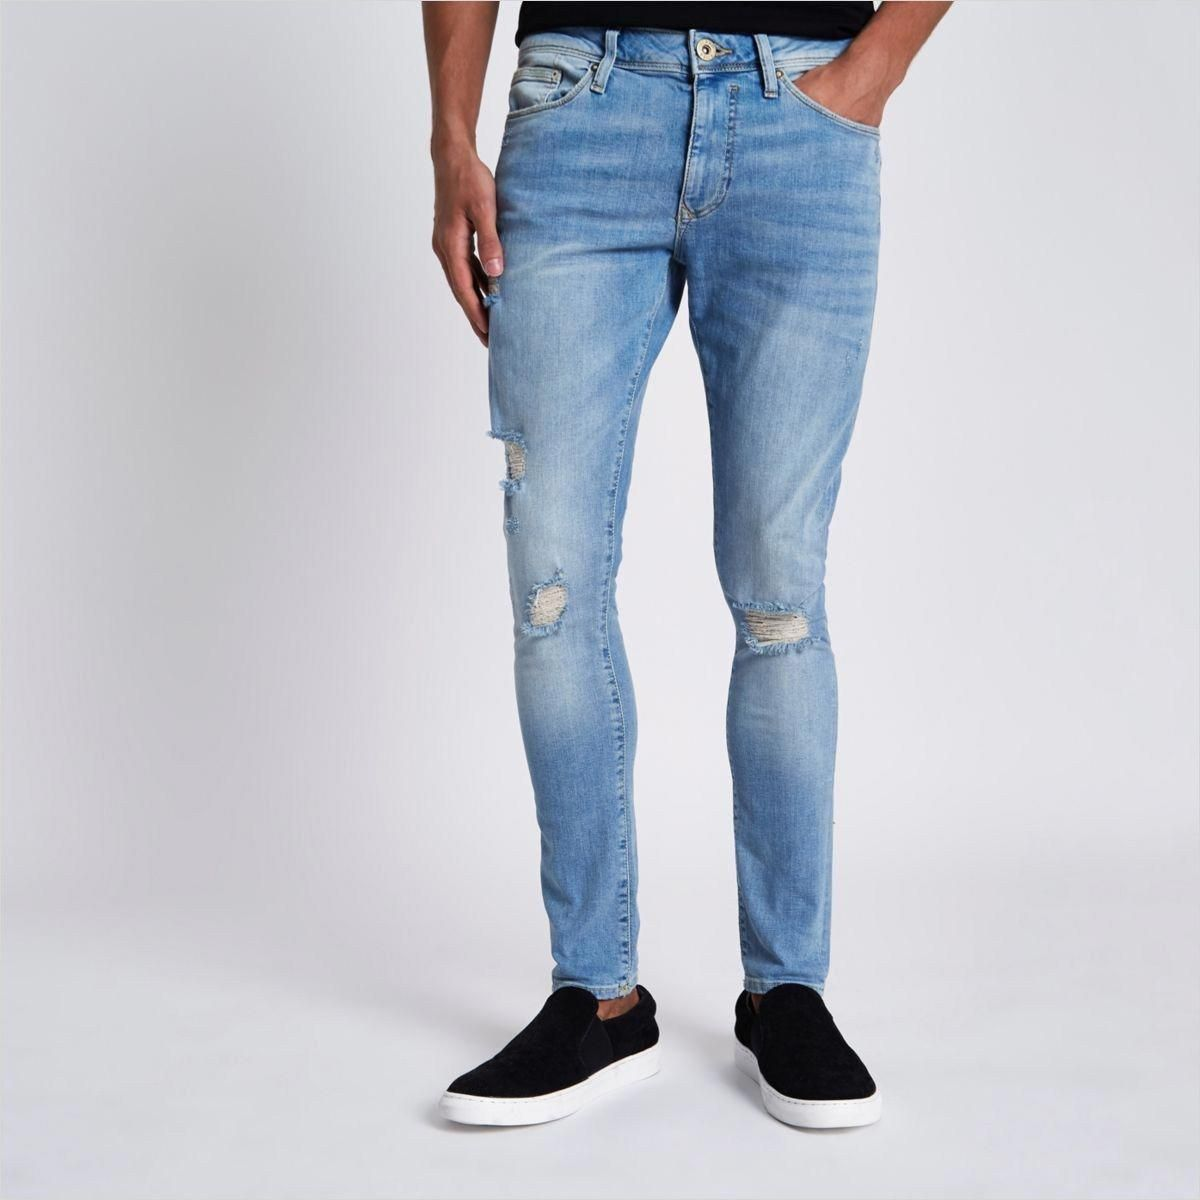 f64c1c28fa22 42 Awesome Light Ripped Jeans Outfit 12 Light Blue Danny Ripped Super Skinny  Jeans Super Skinny Jeans Men 5  JeansRipped